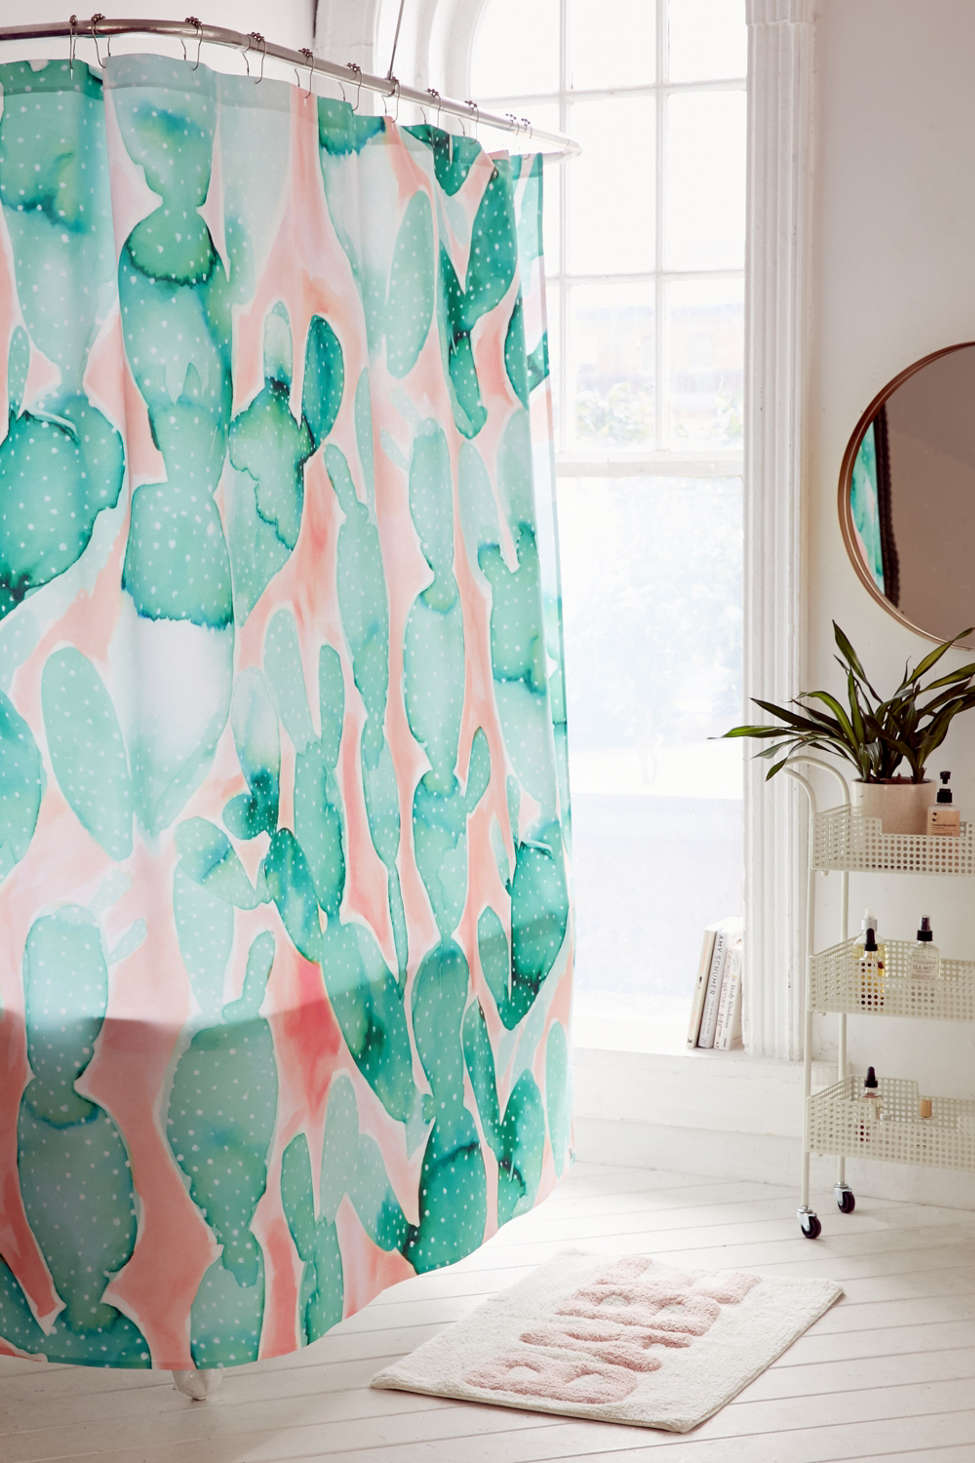 Slide View: 1: Jacqueline Maldonado For Deny Paddle Cactus Shower Curtain